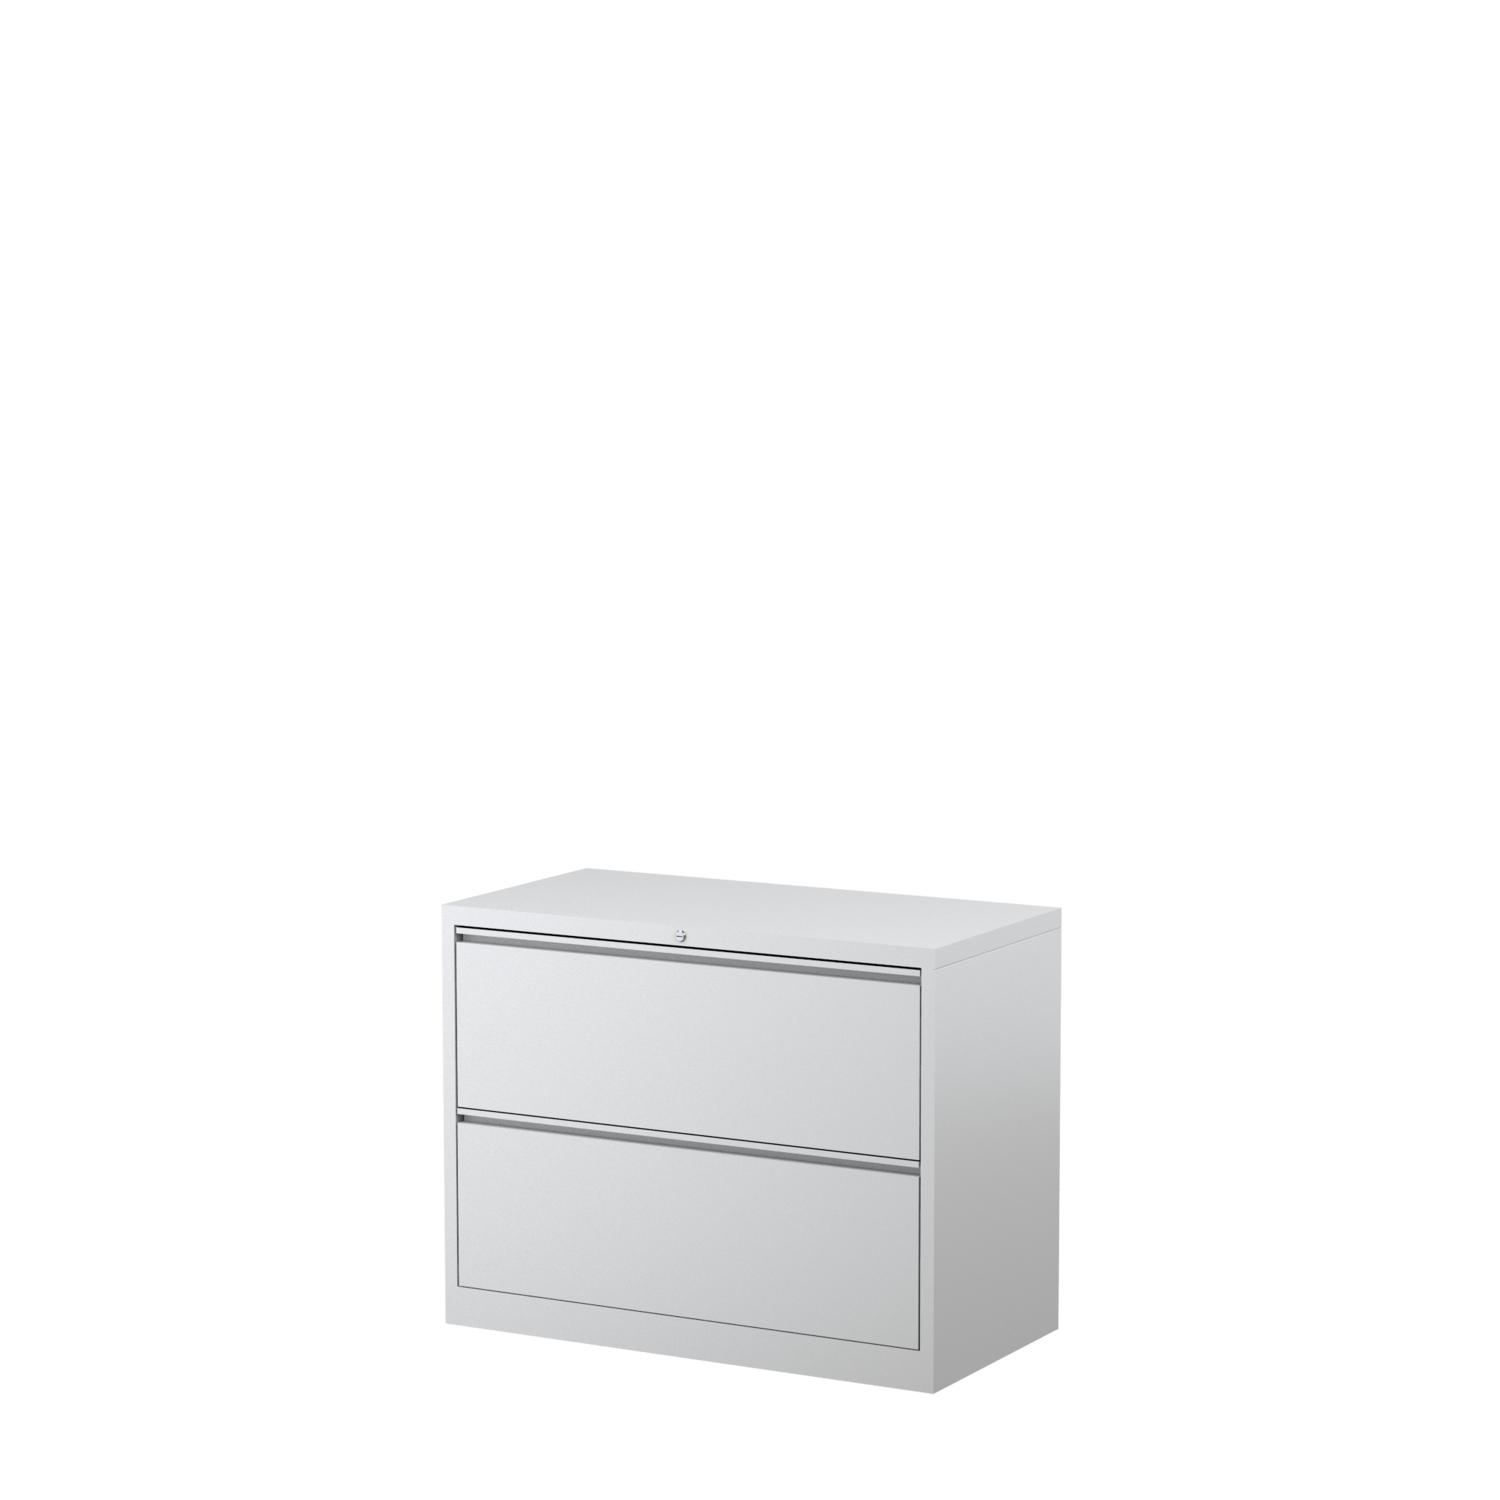 Image of: Steelco 2 Drawer Lateral Filing Cabinet